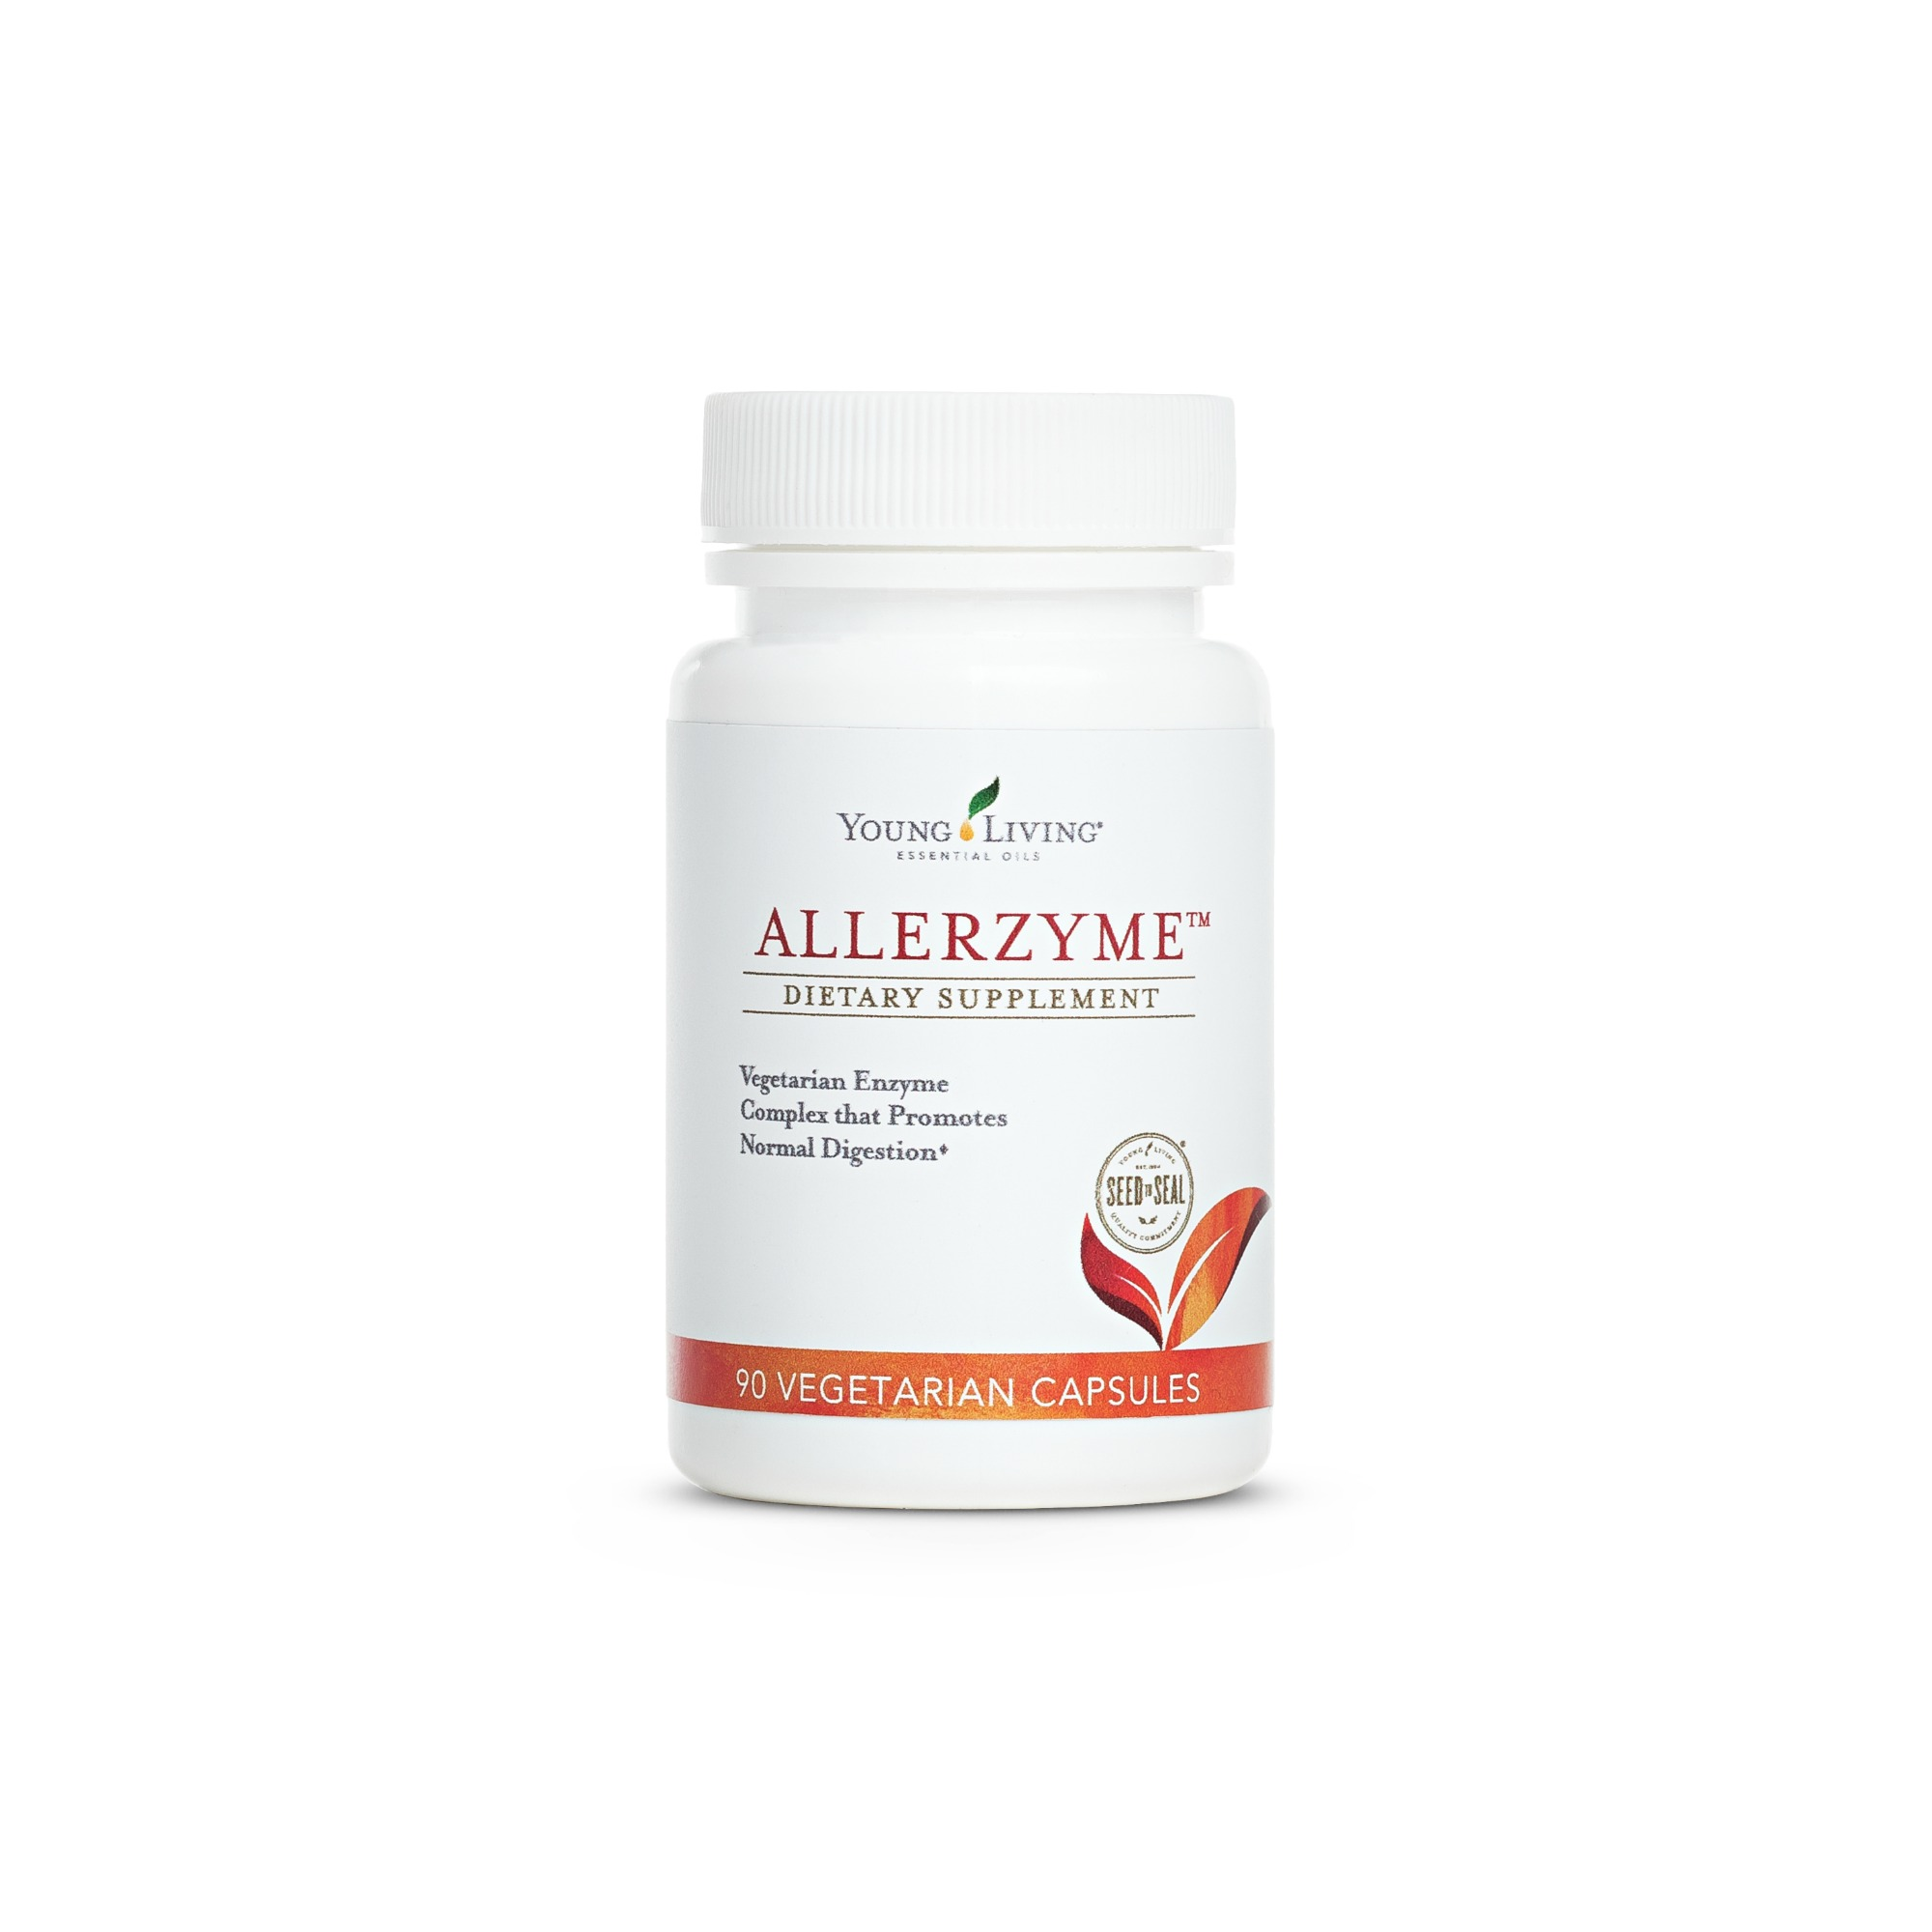 ALLERZYME    Allerzyme is a vegetarian enzyme complex that promotes digestion. This complex is great for the gut and healthy bathroom visits, but it's also an important supplement to be taking during weather changes for relief from seasonal irritants. This supplement is ideal for digestive, respiratory, and immune health.   Click here   to learn more about this product.